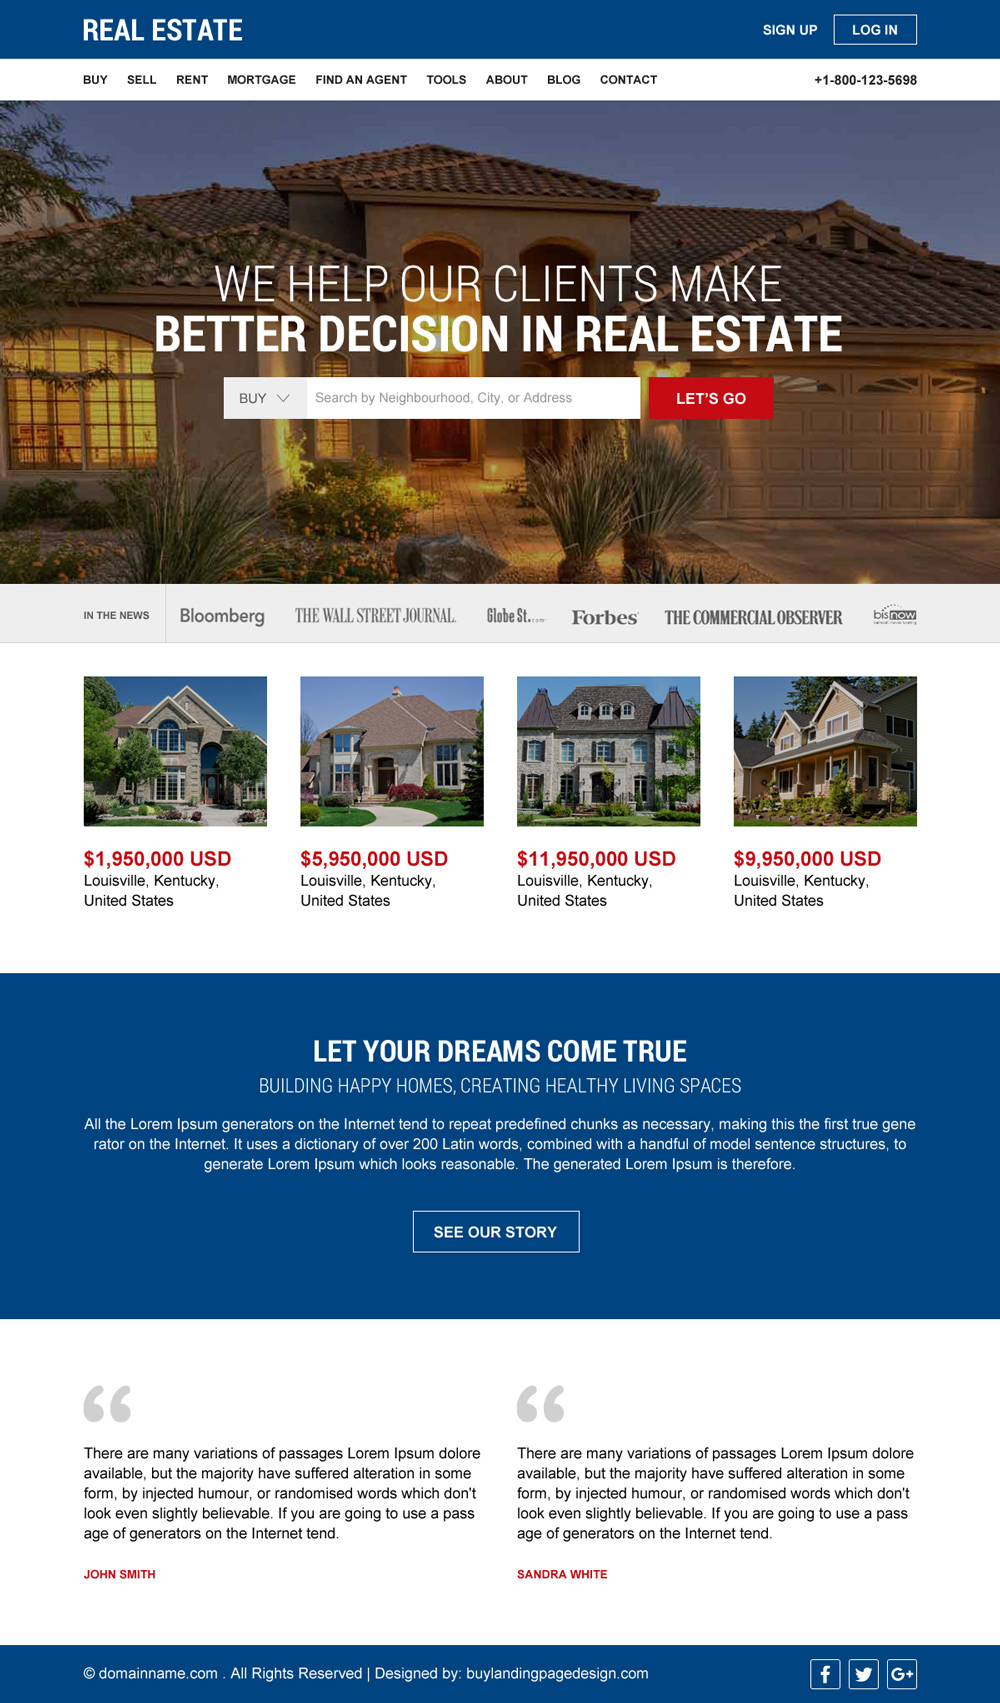 free quote lead capture real estate website design Archives